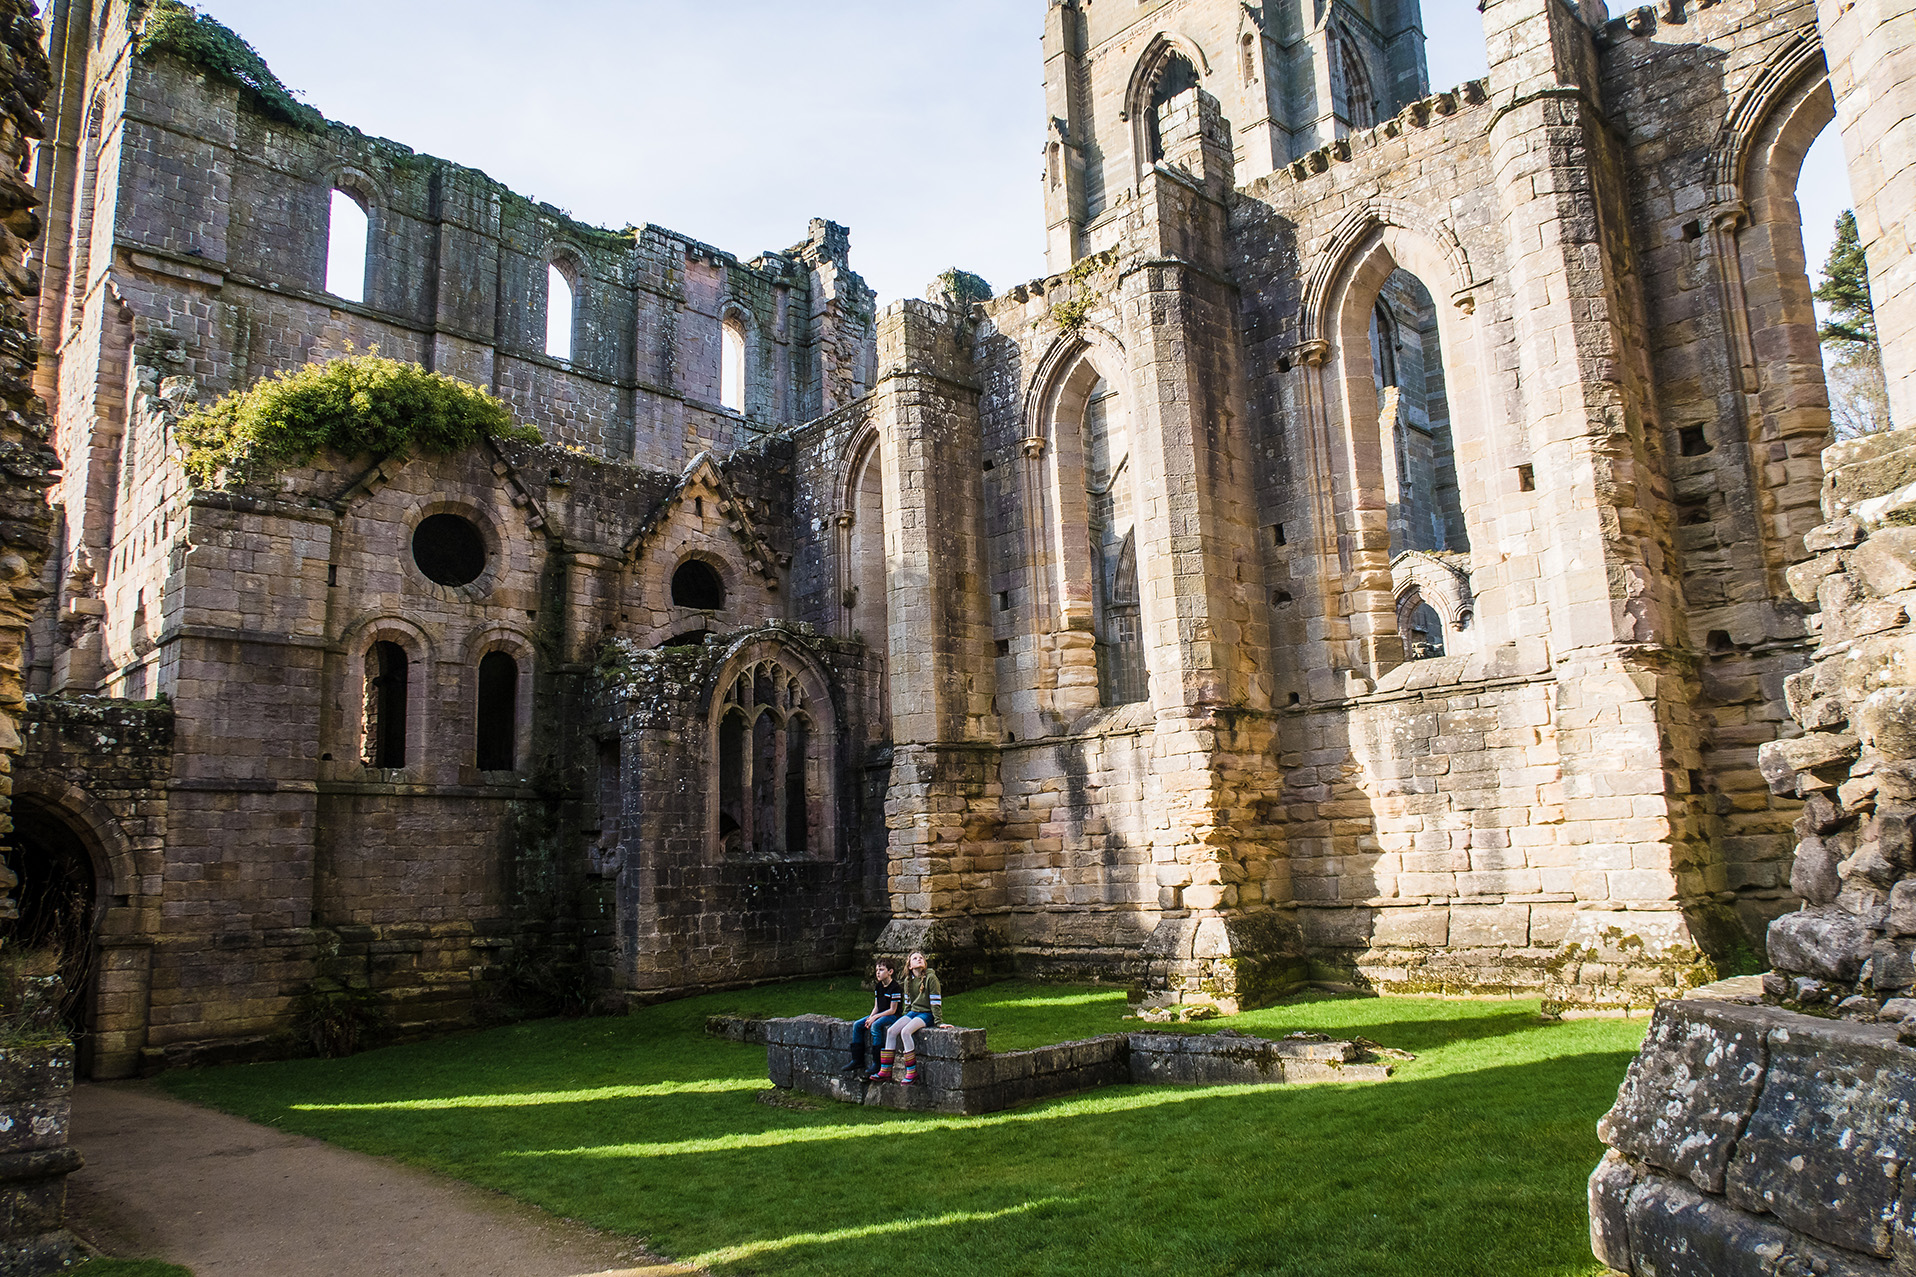 Ruins at Fountains Abbey